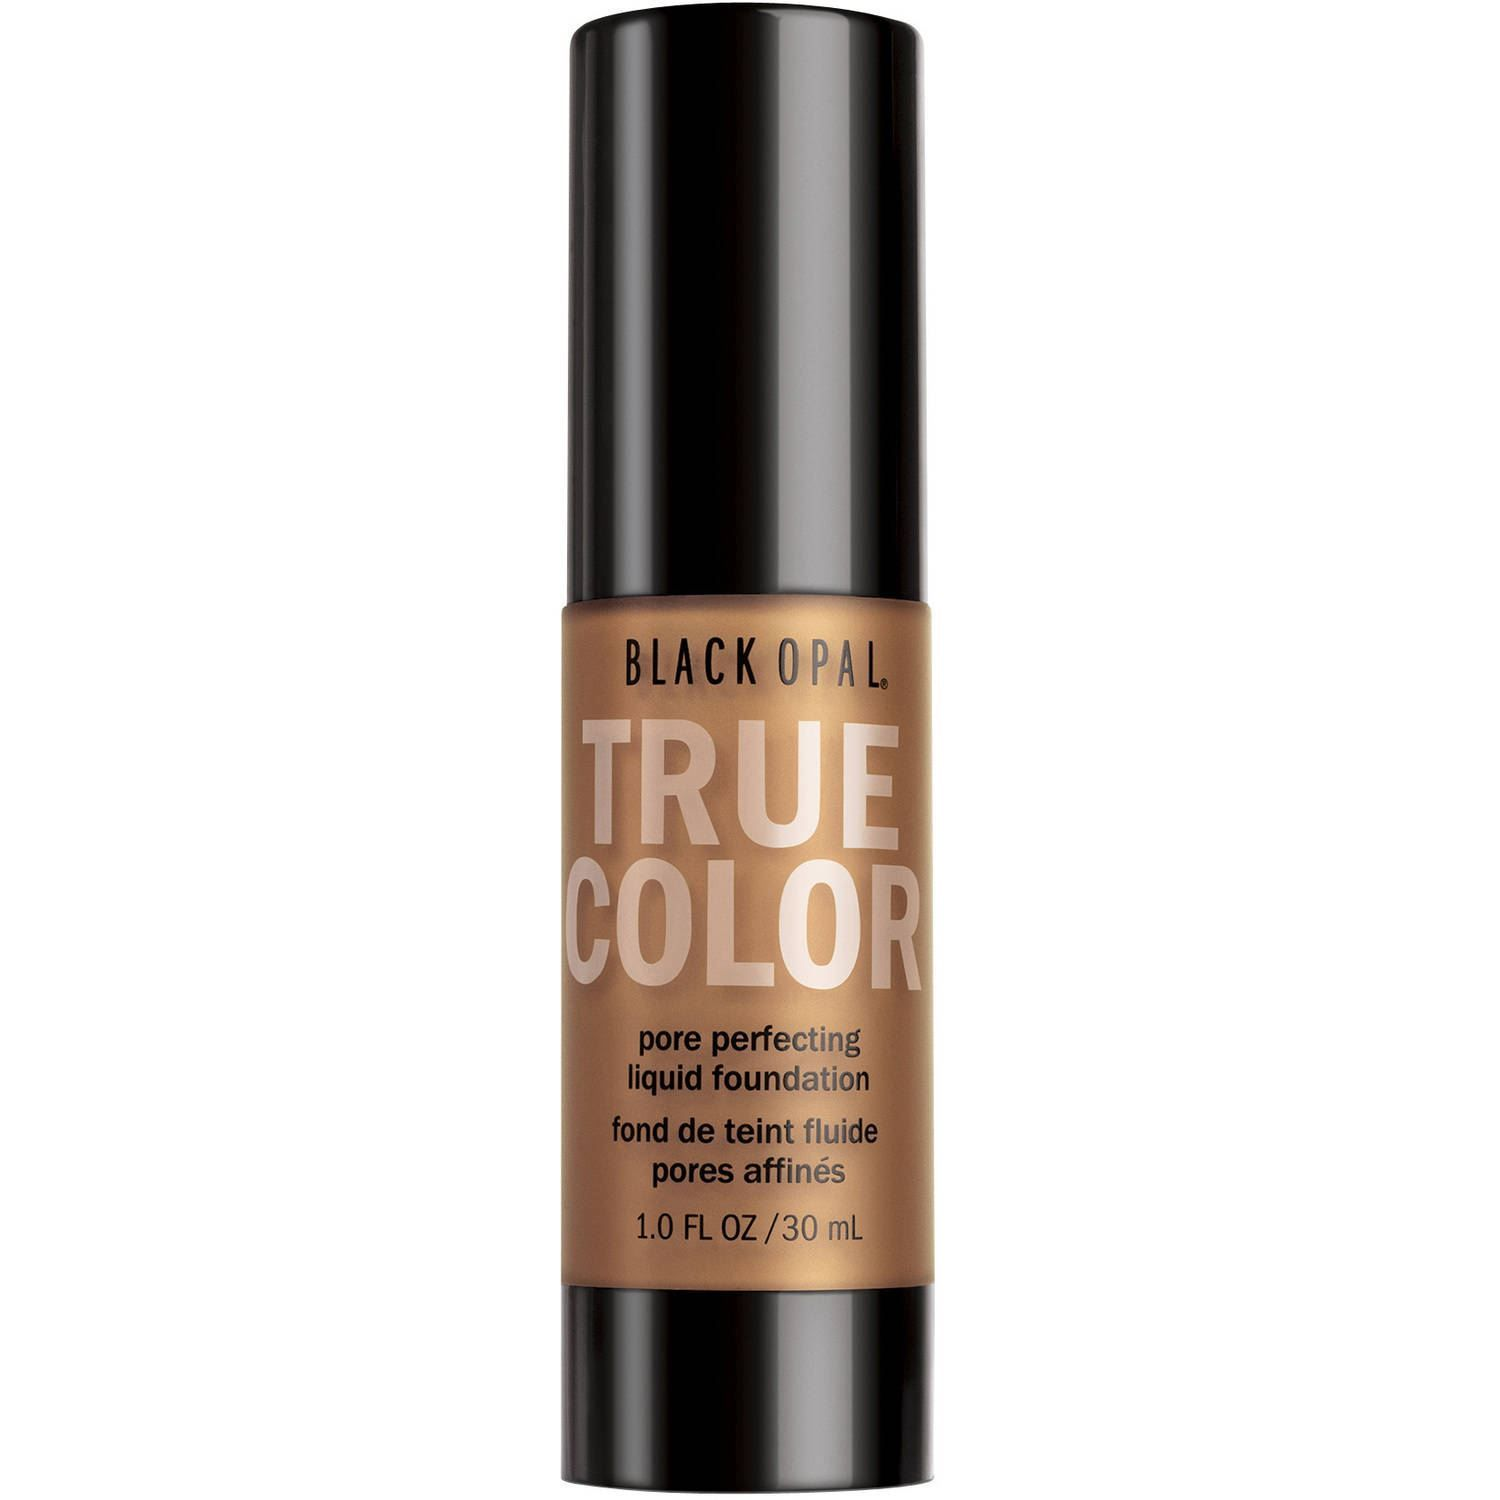 True Color Pore Perfecting Liquid Foundation